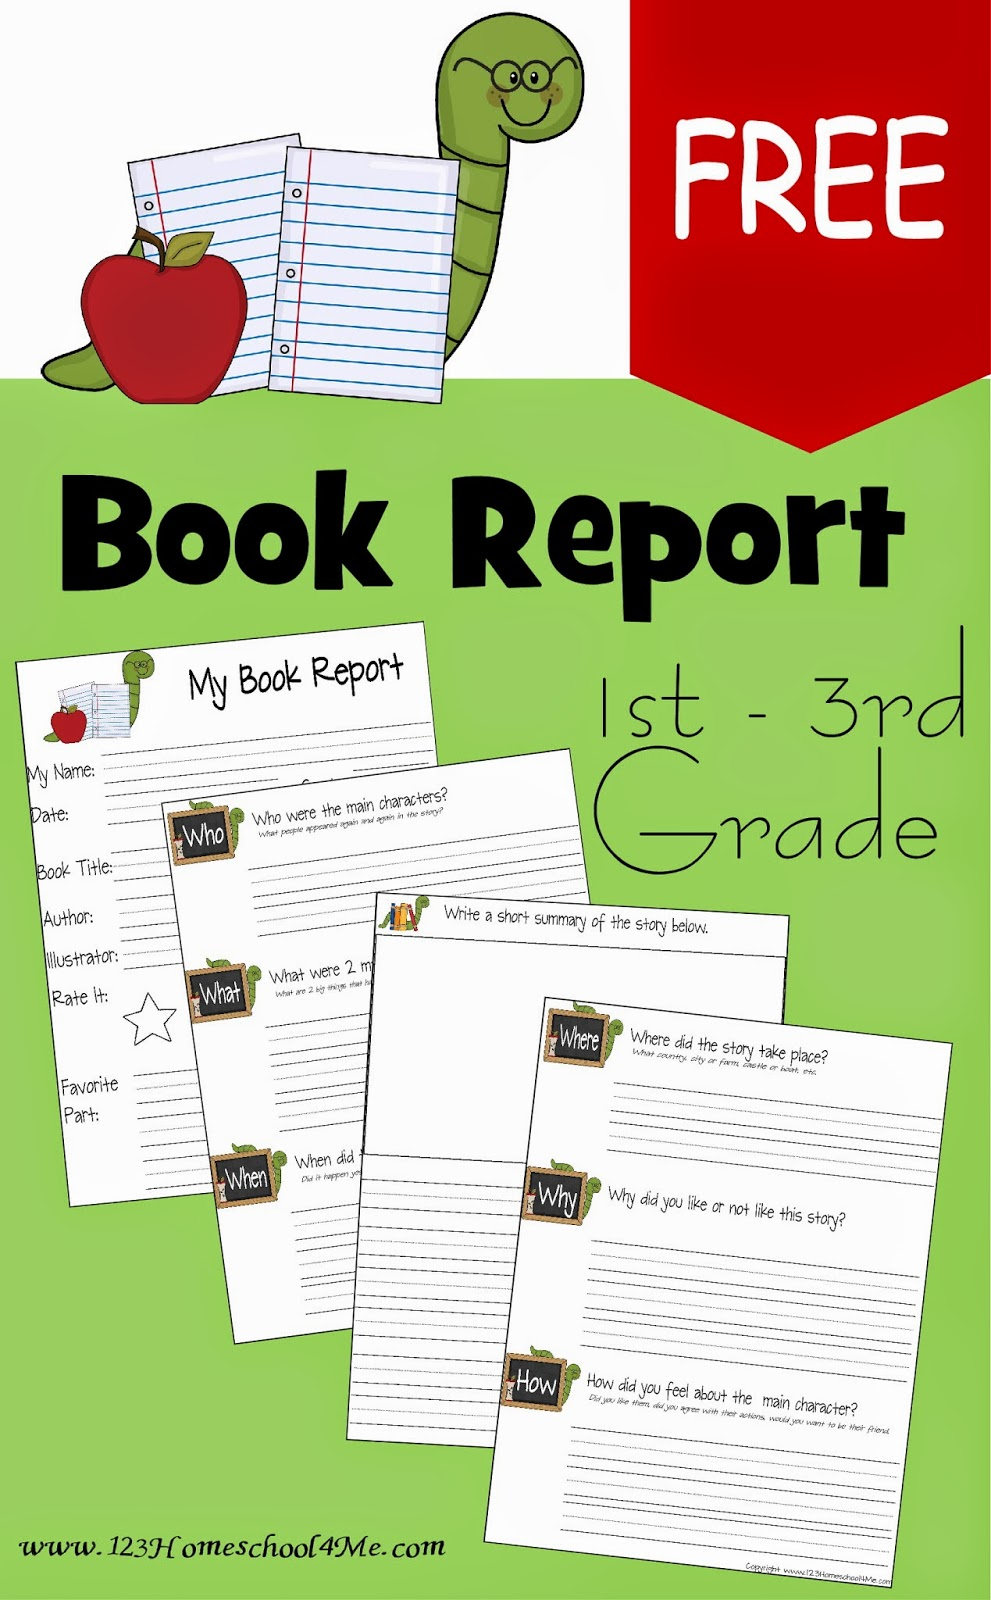 free ideas for book reports